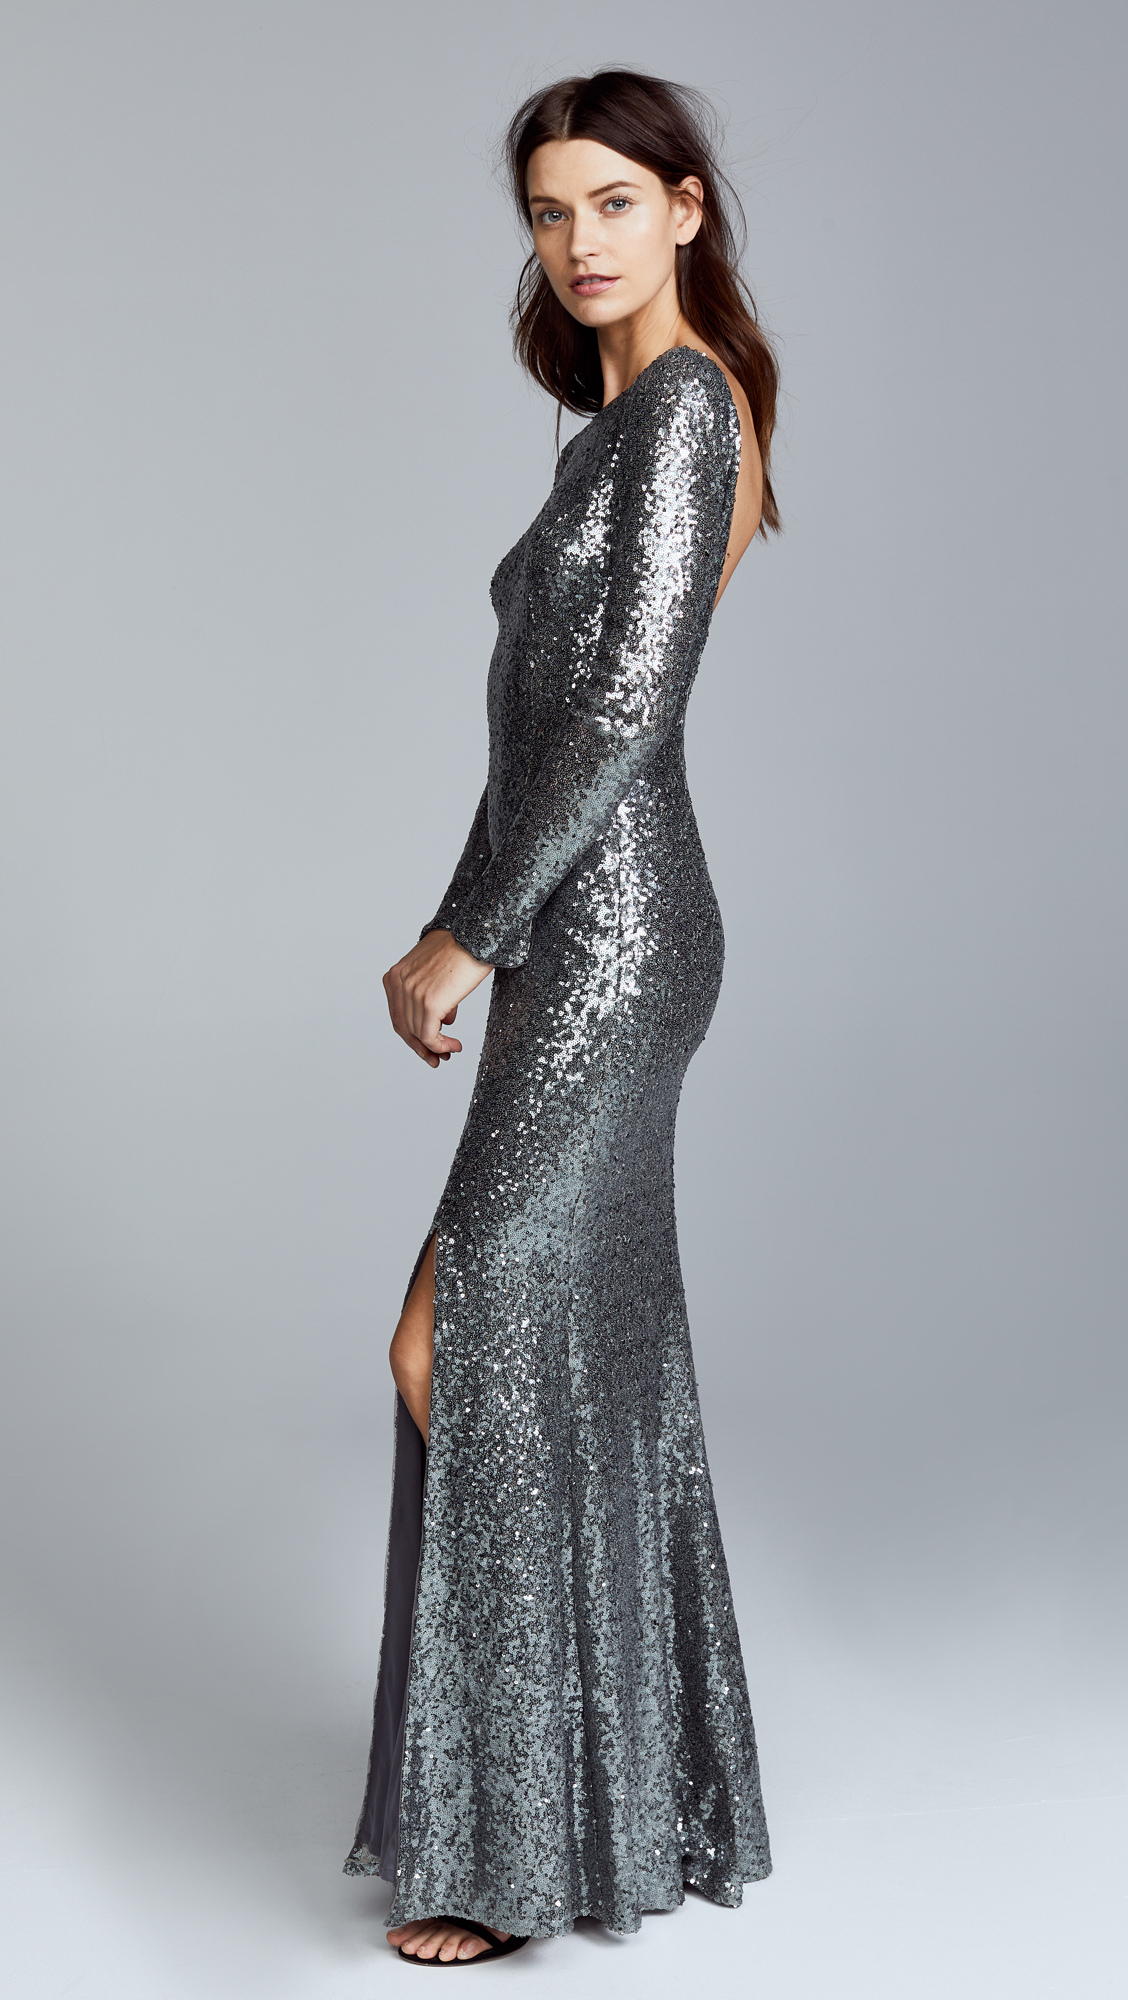 Magnificent Theia Harlow Sequin Gown Illustration - Wedding and ...